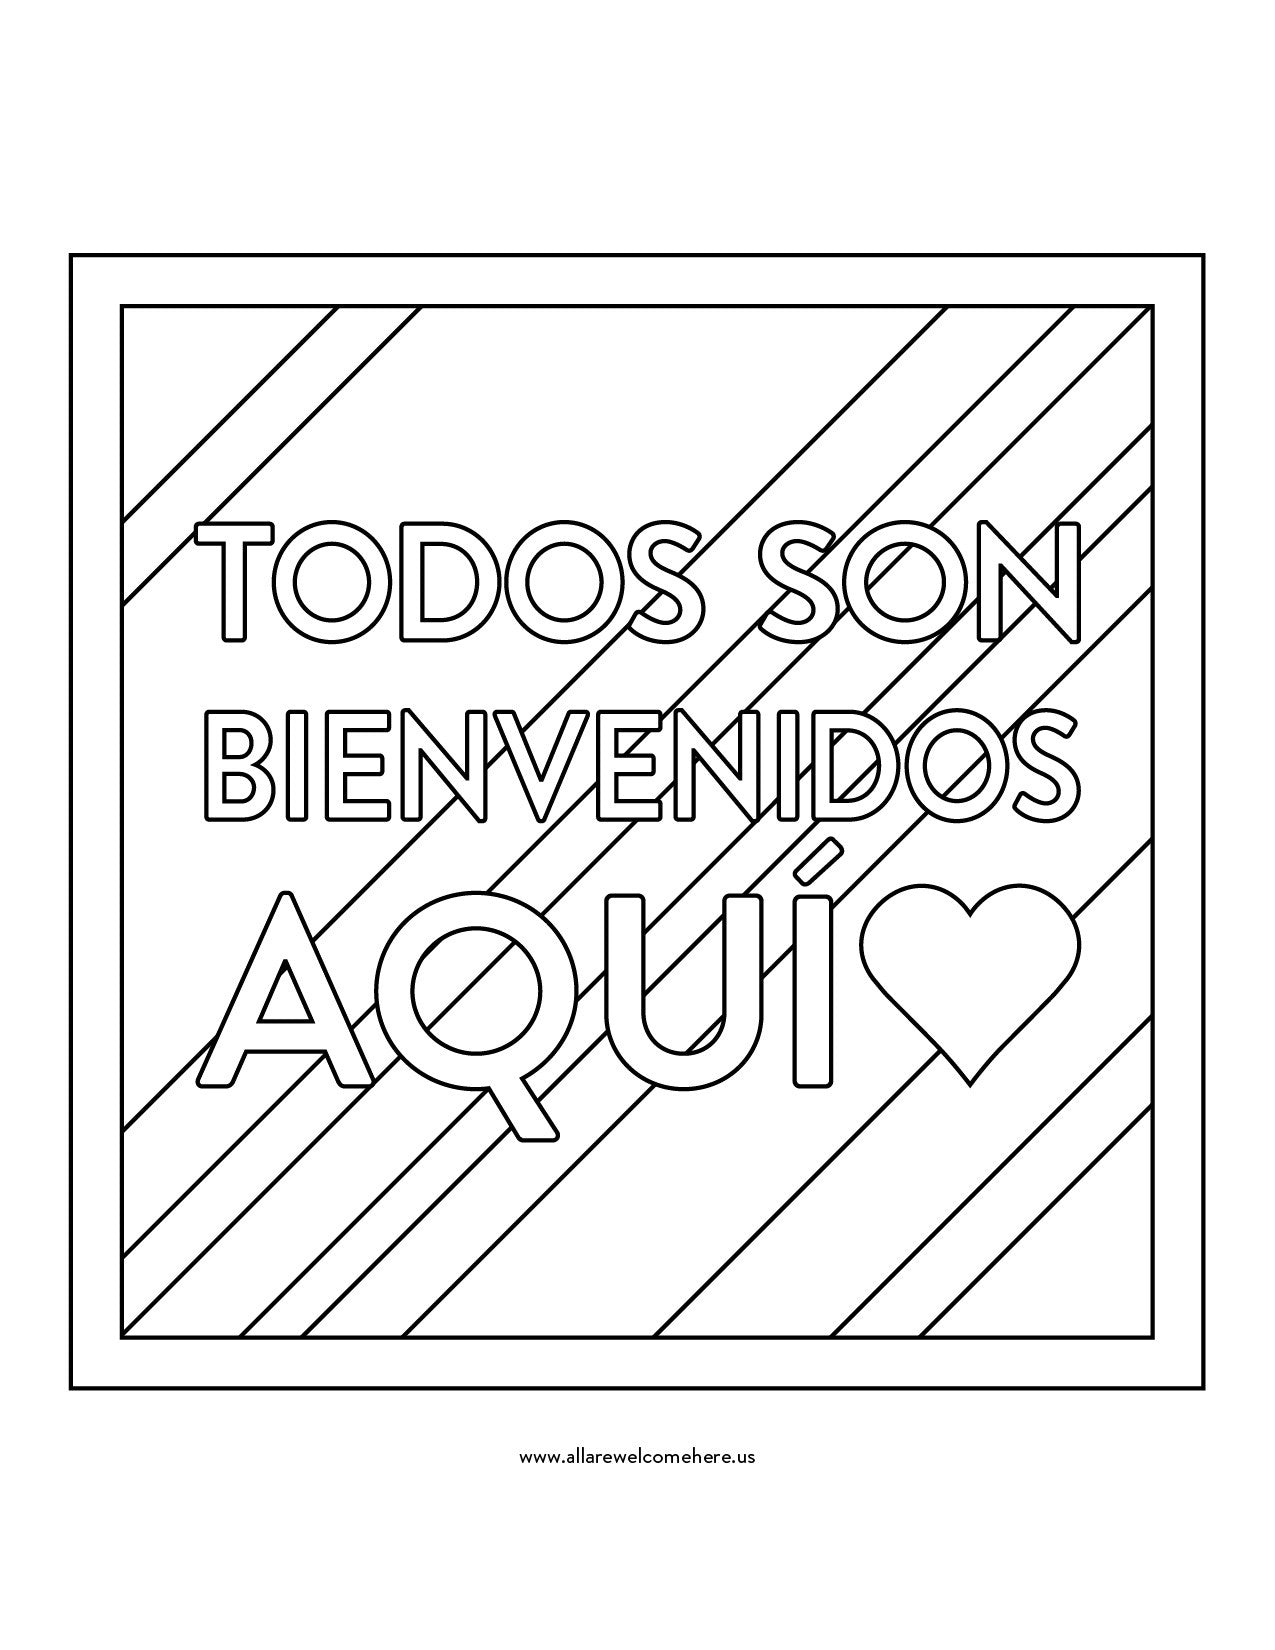 Free Download: Spanish Coloring Sheet – All Are Welcome Here